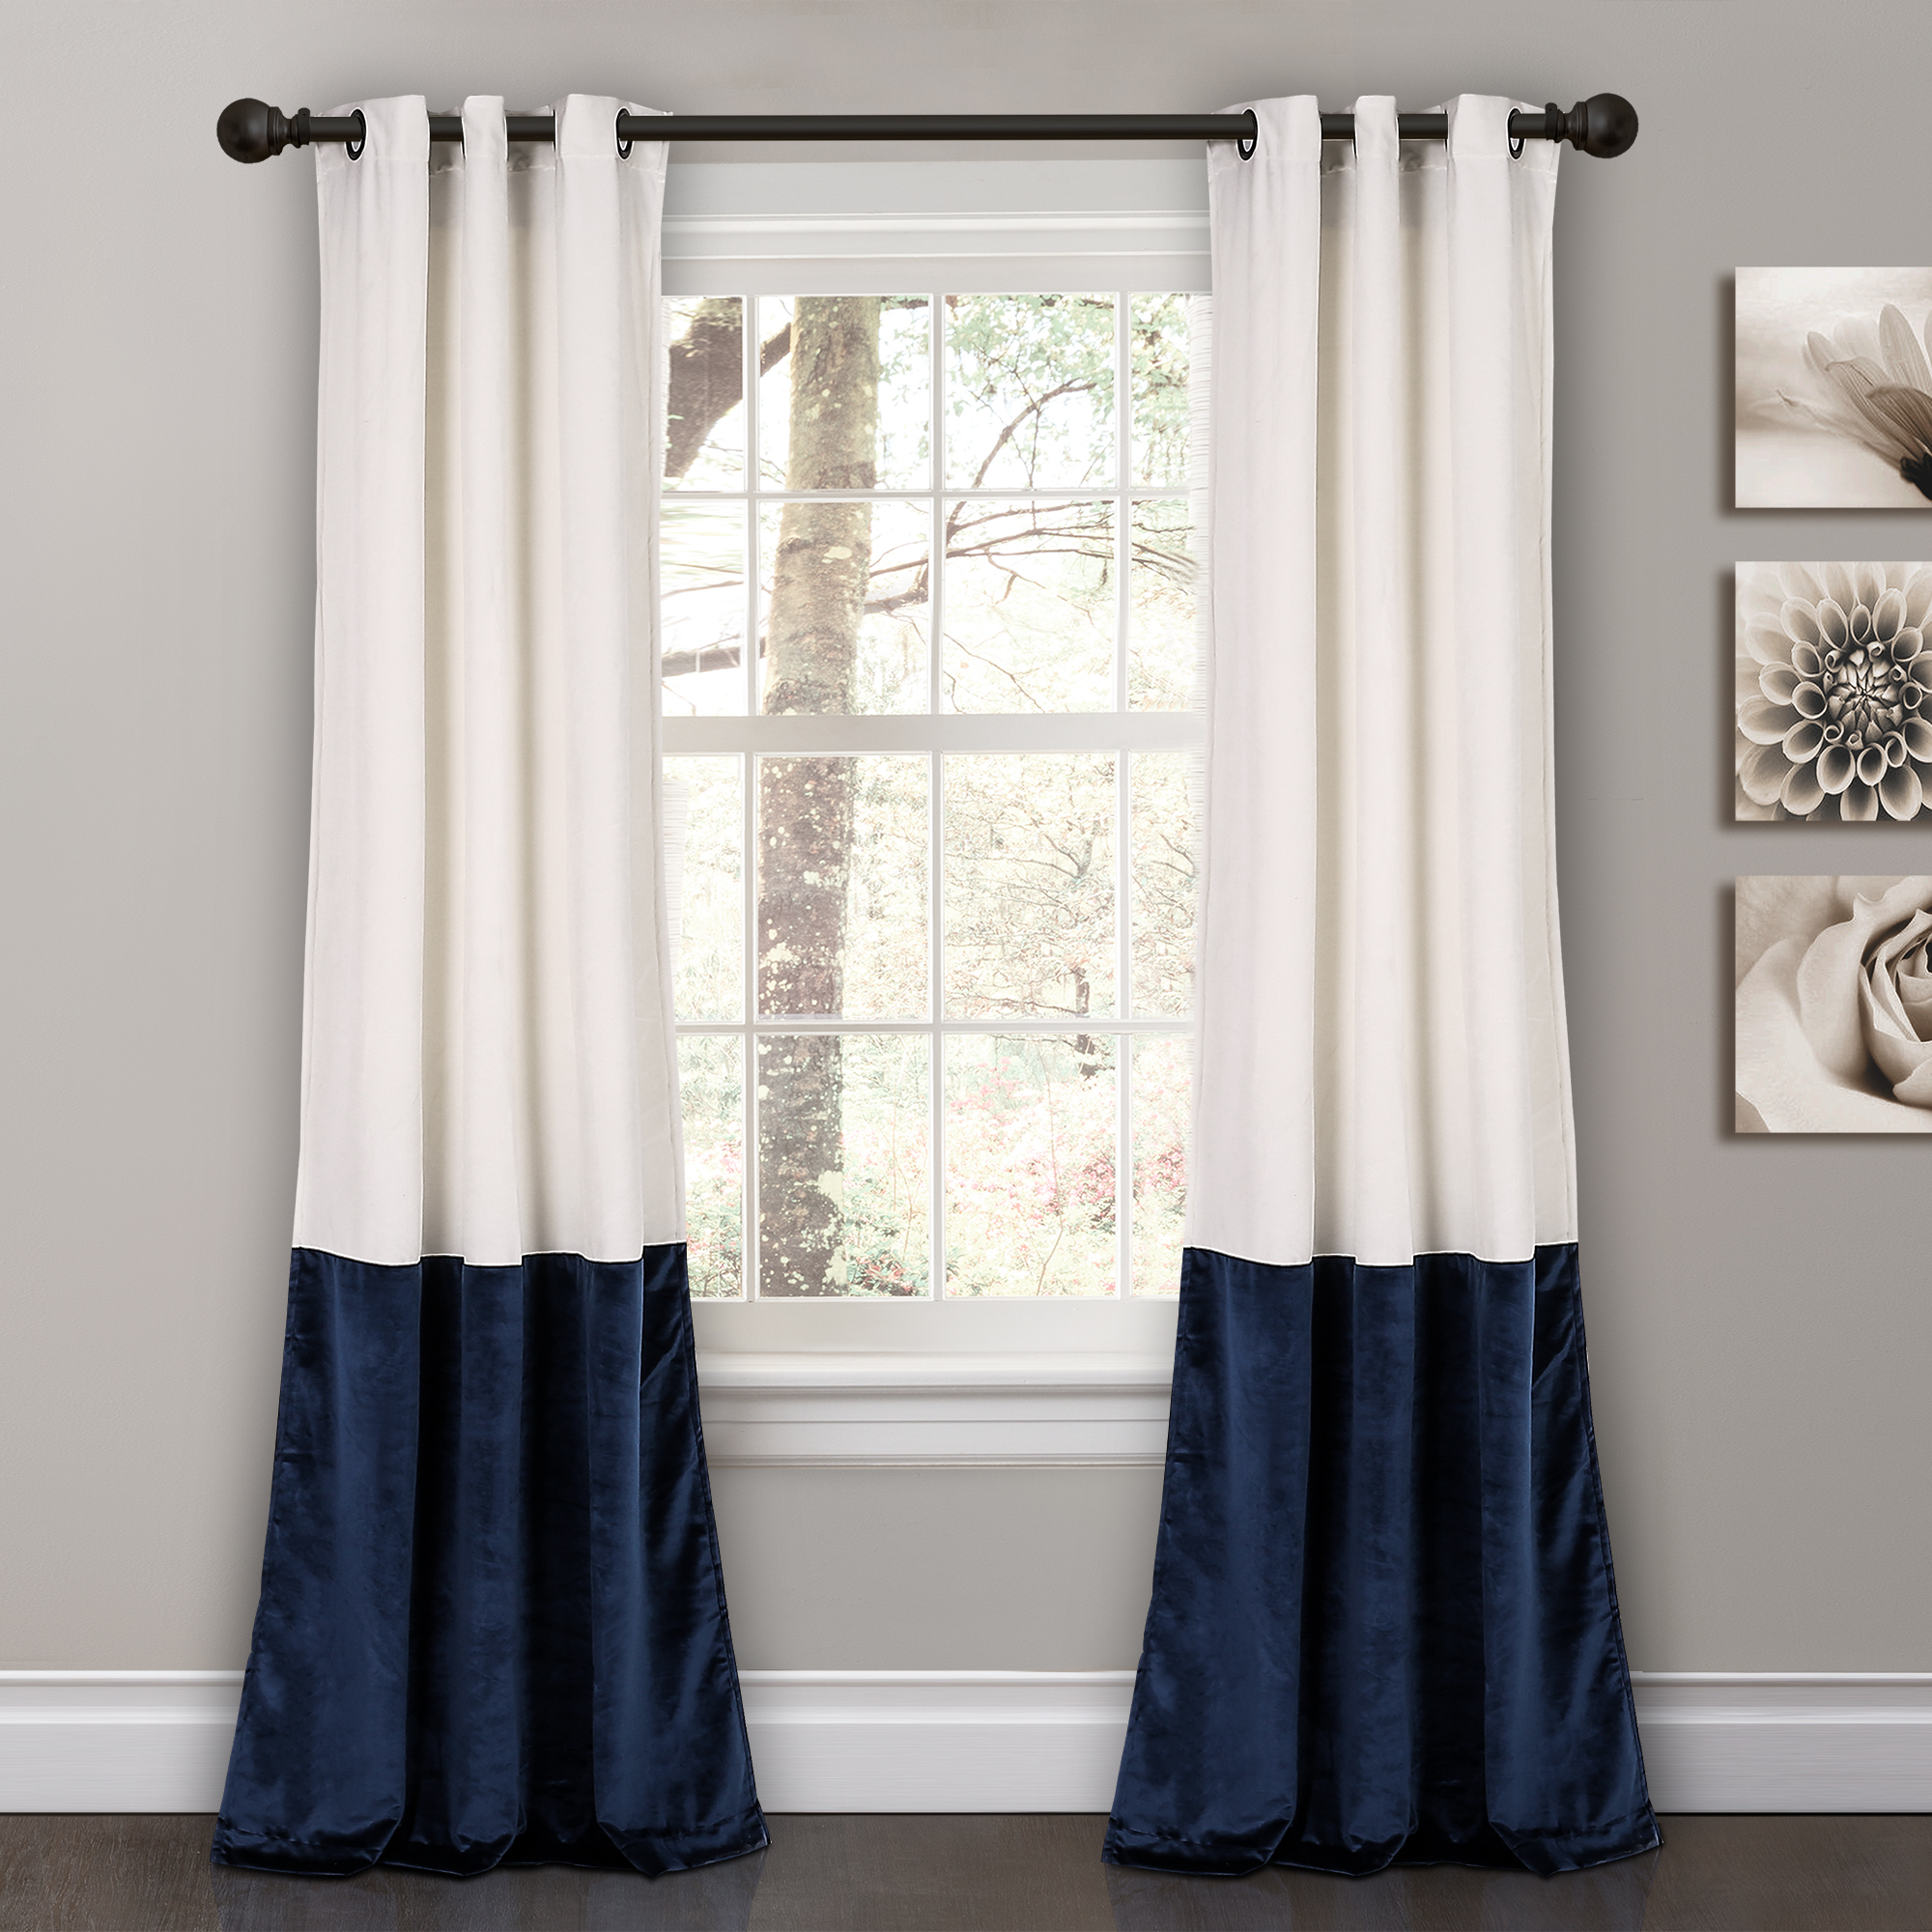 """Details About Prima Velvet Color Block Room Darkening Window Curtain Panel Pair, 84"""" X 38"""" Within Weeping Flowers Room Darkening Curtain Panel Pairs (View 15 of 30)"""